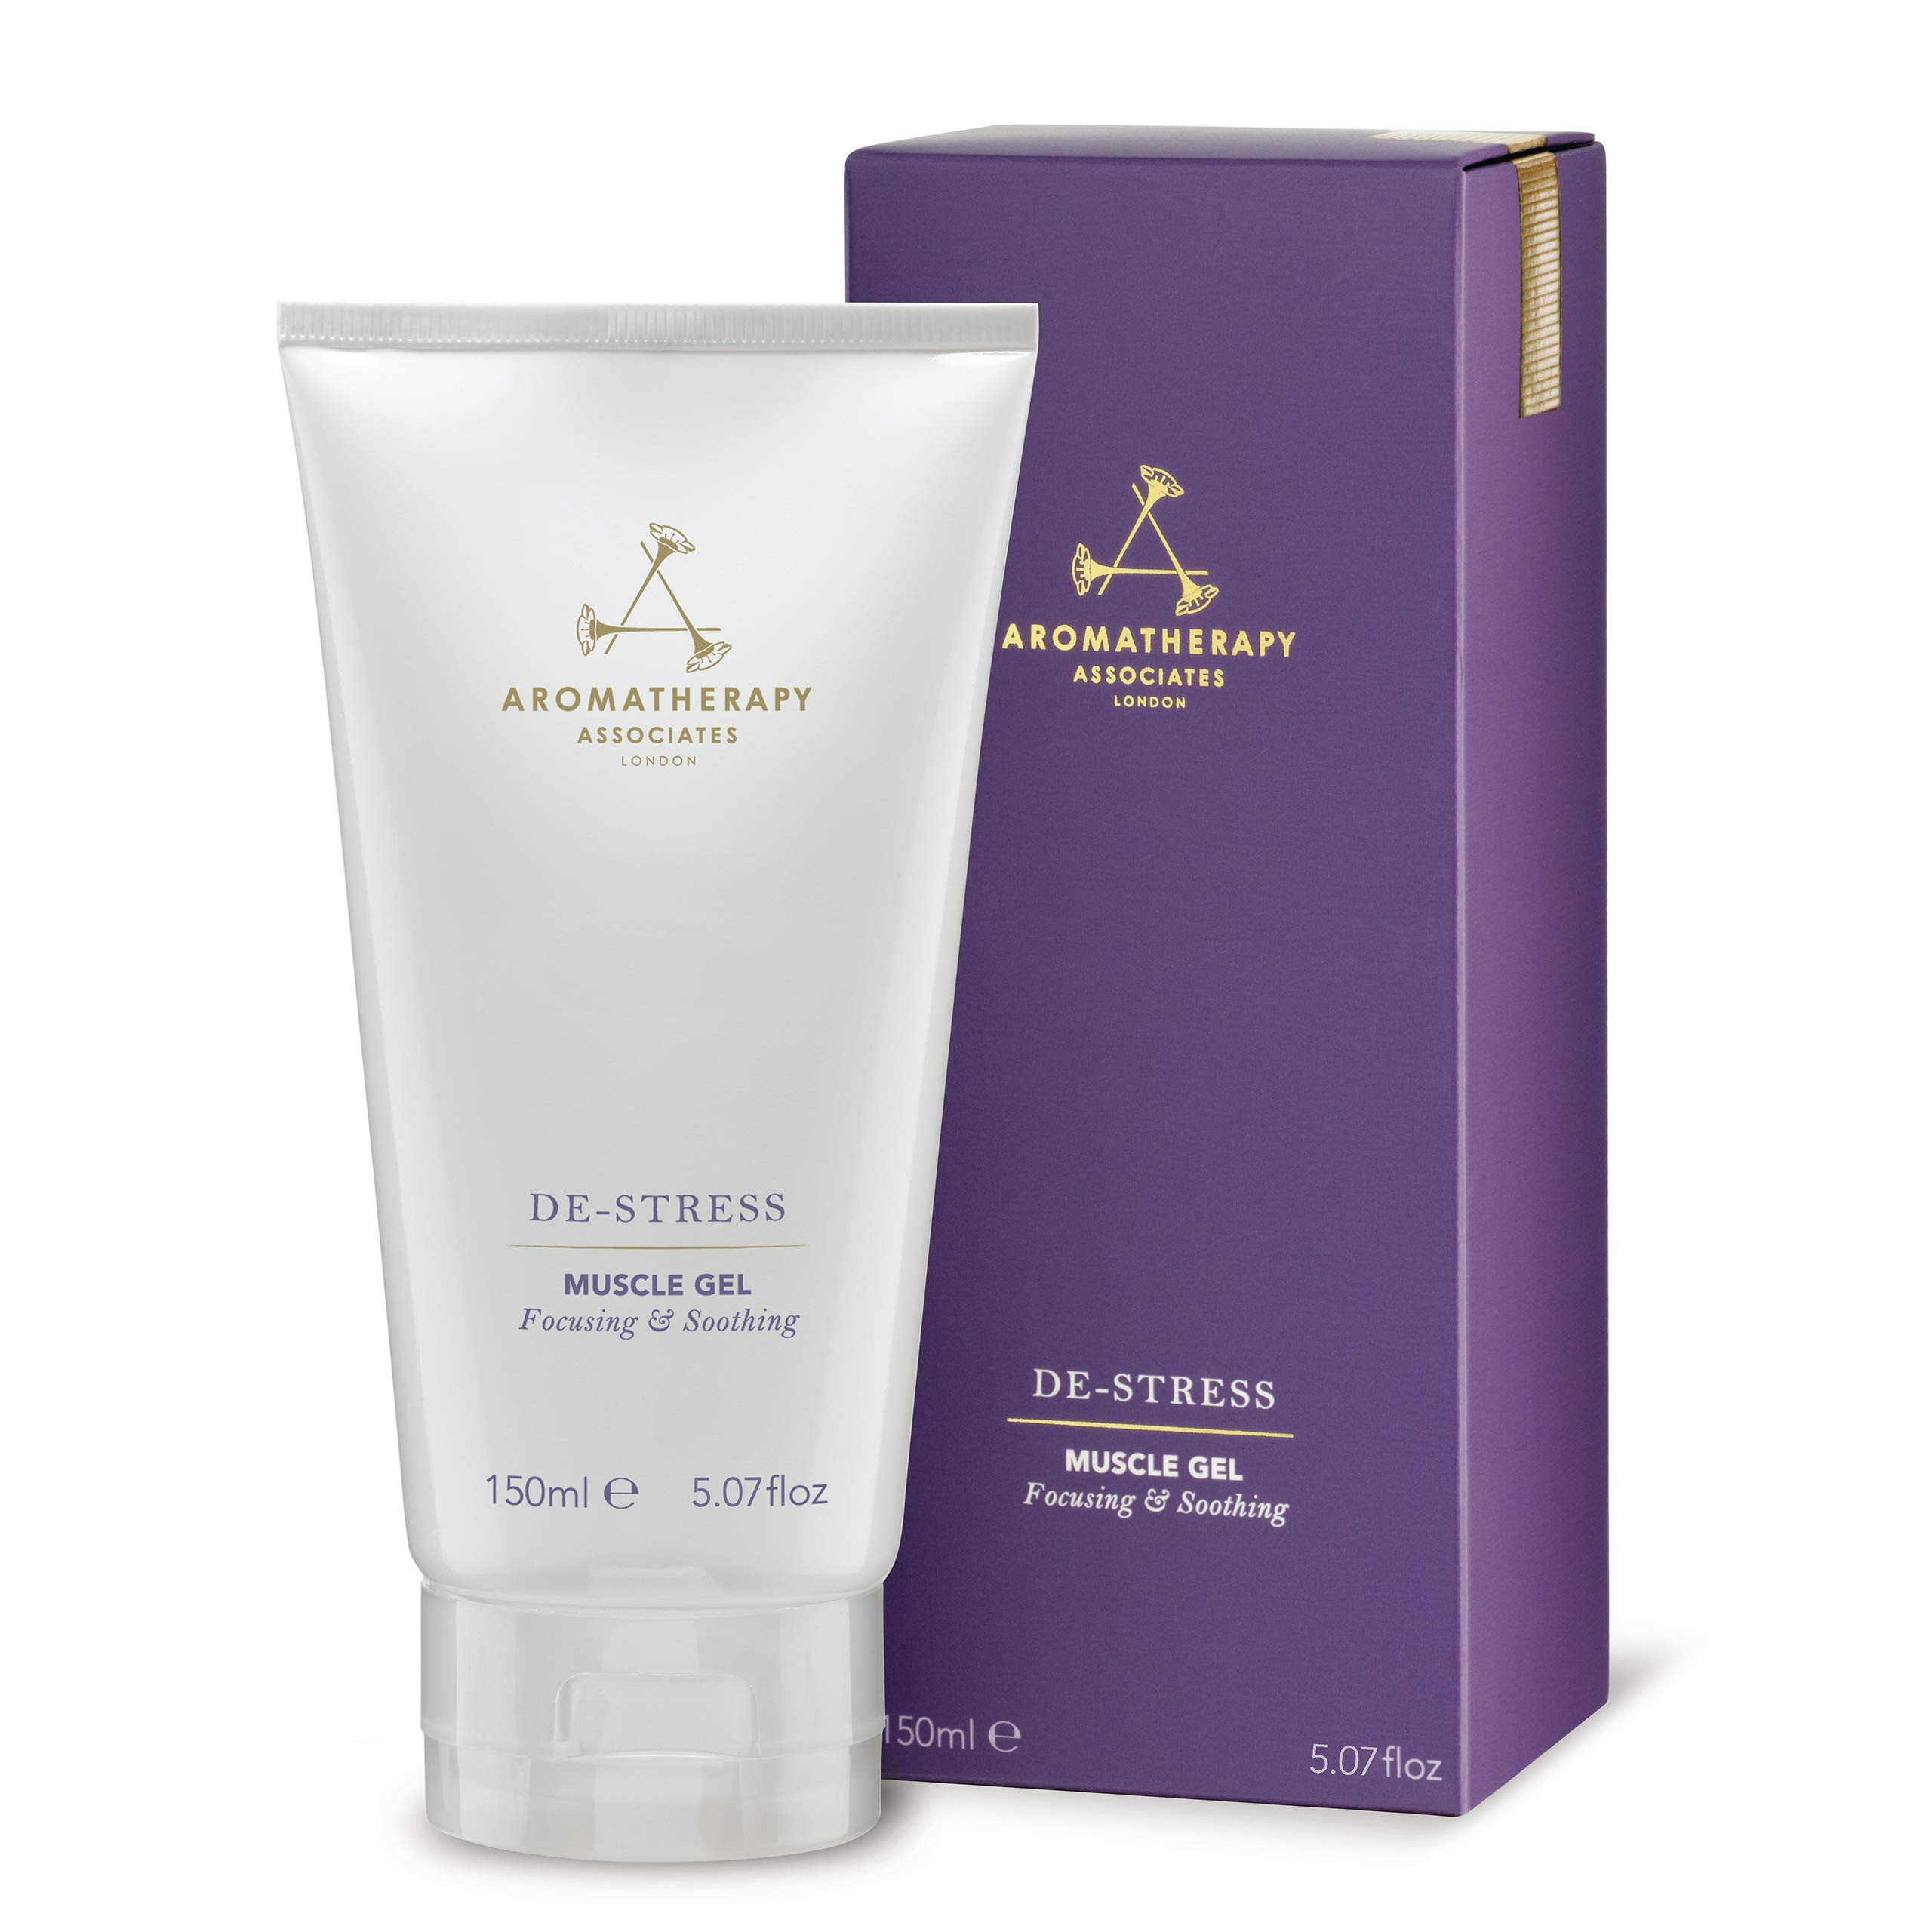 Aromatherapy Associates De-Stress Muscle Gel, 5.07 oz Tube - Pain Relief Cooling Gel For Joint and Muscle Aches and Soreness by Aromatherapy Associates